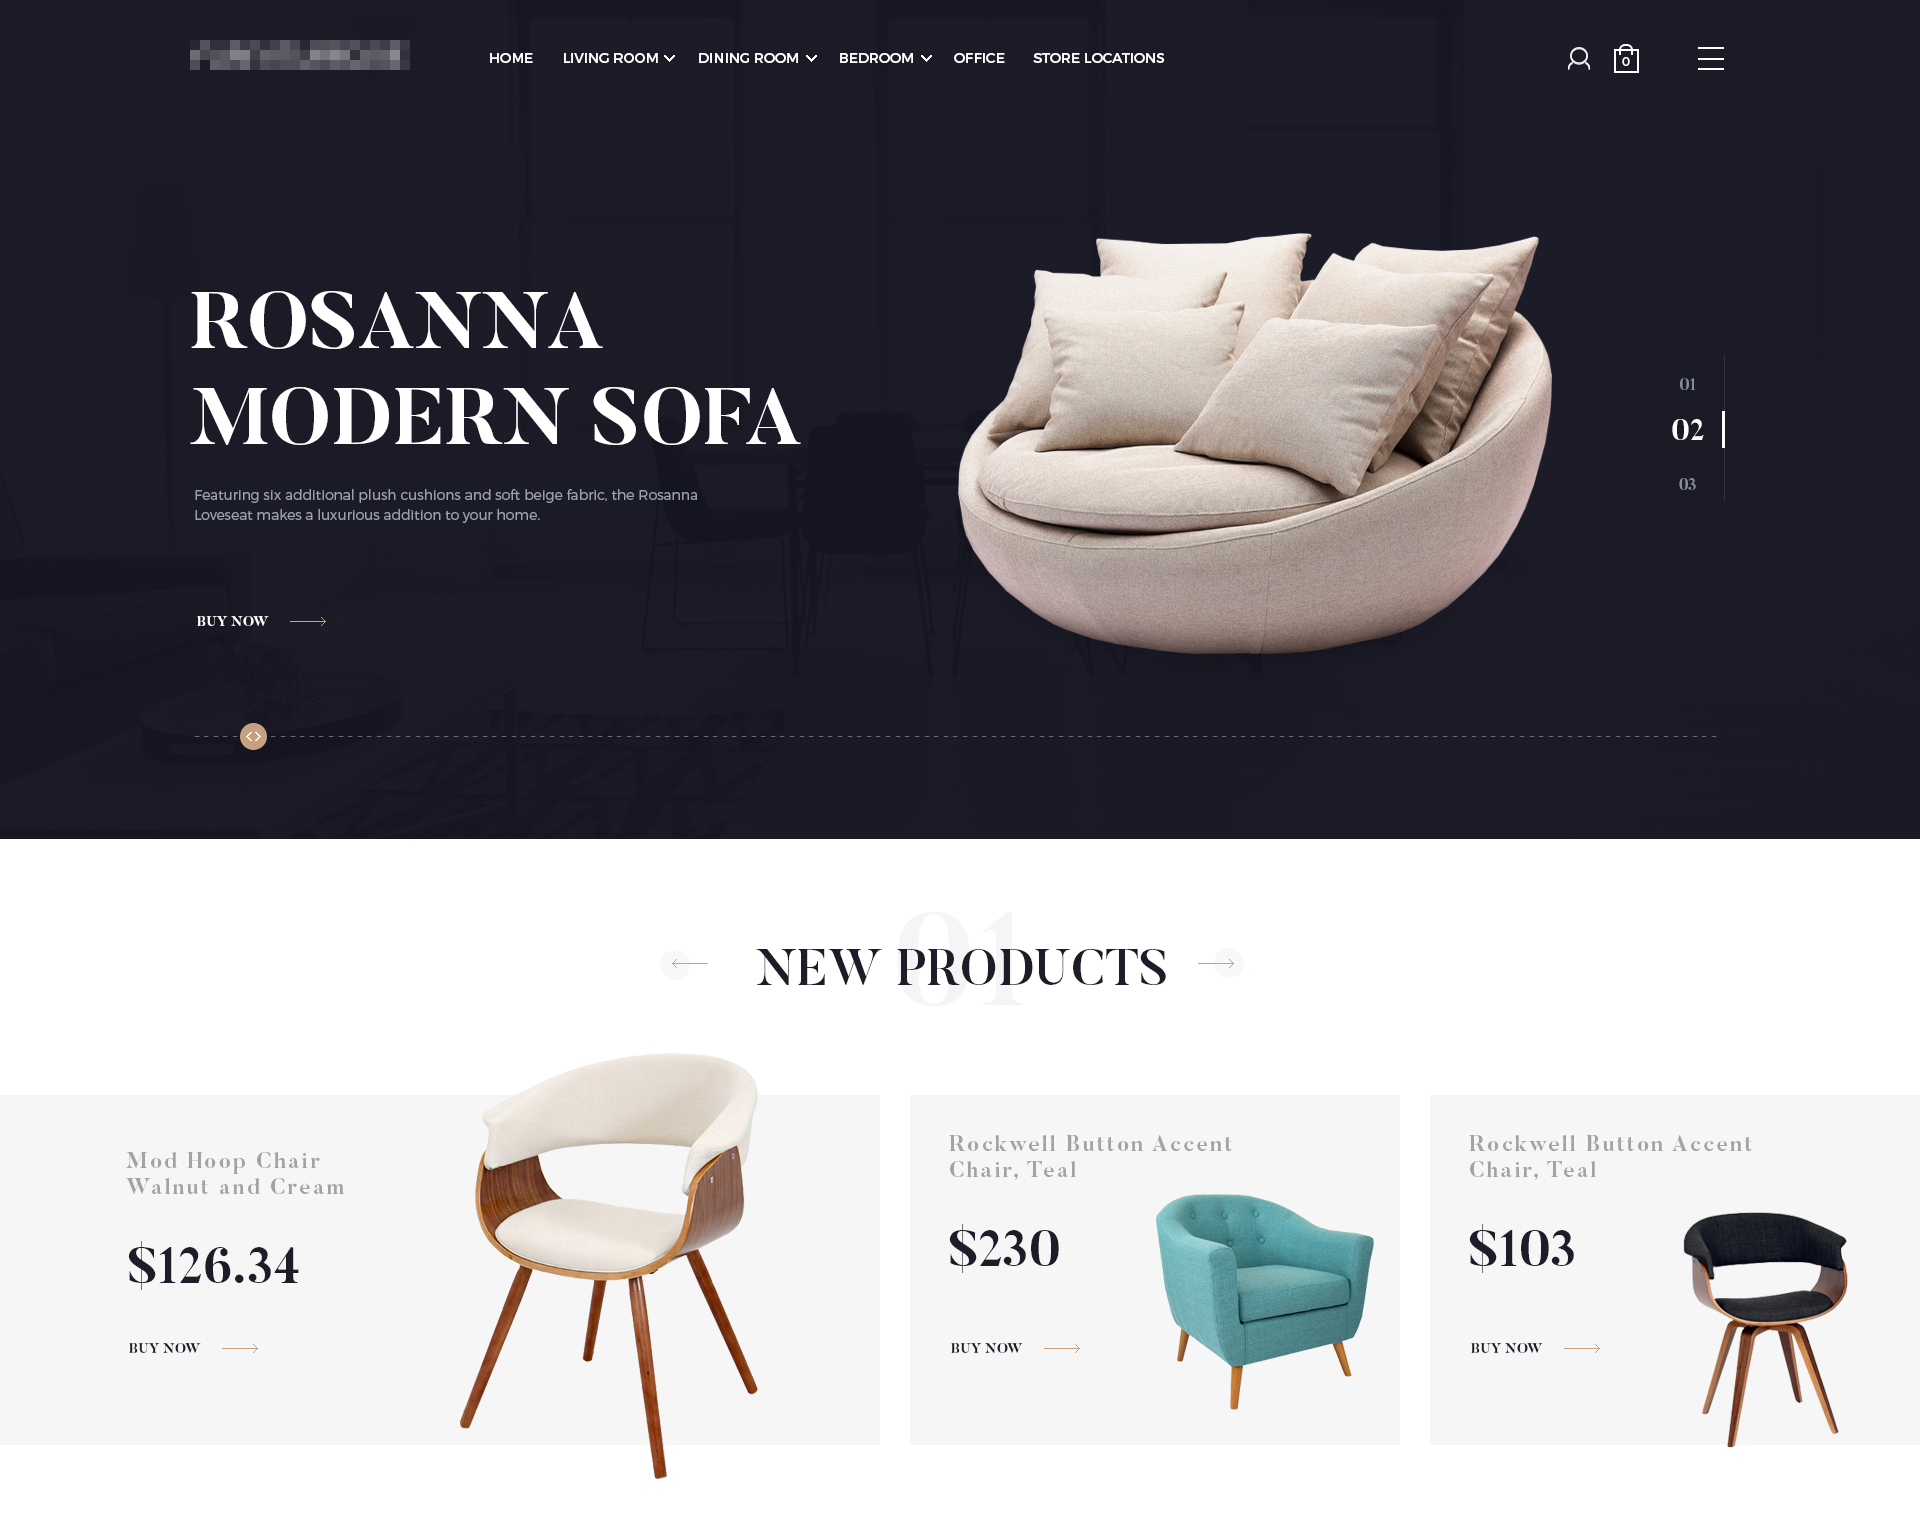 eCommerce website design guide: beautiful web design